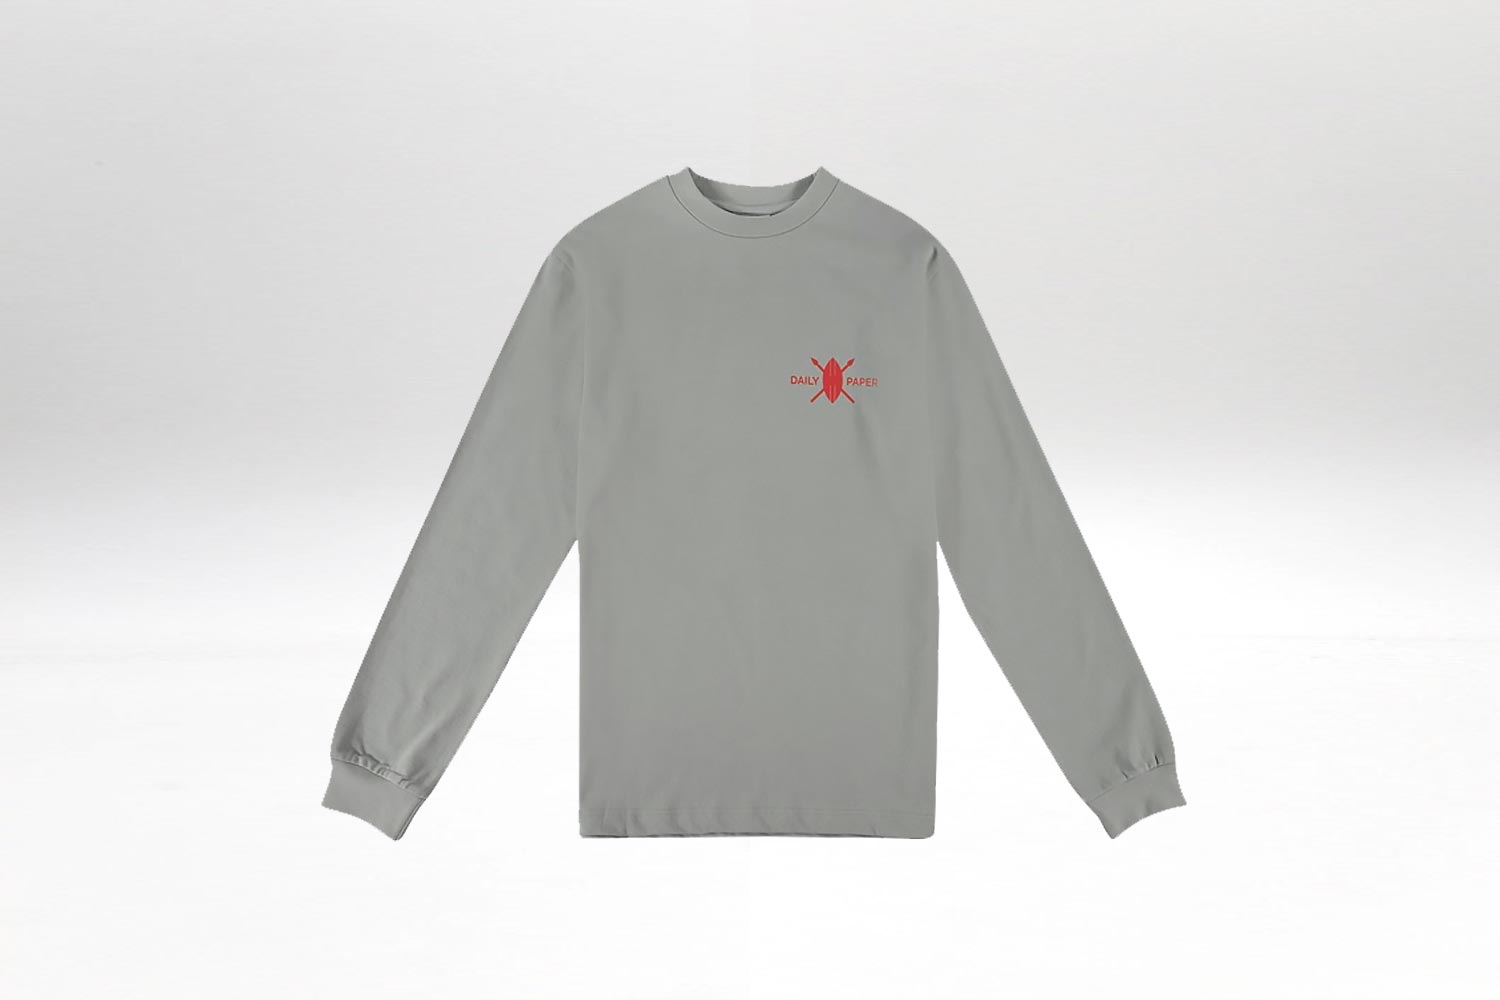 DAILY PAPER COMAR LONGSLEEVE front